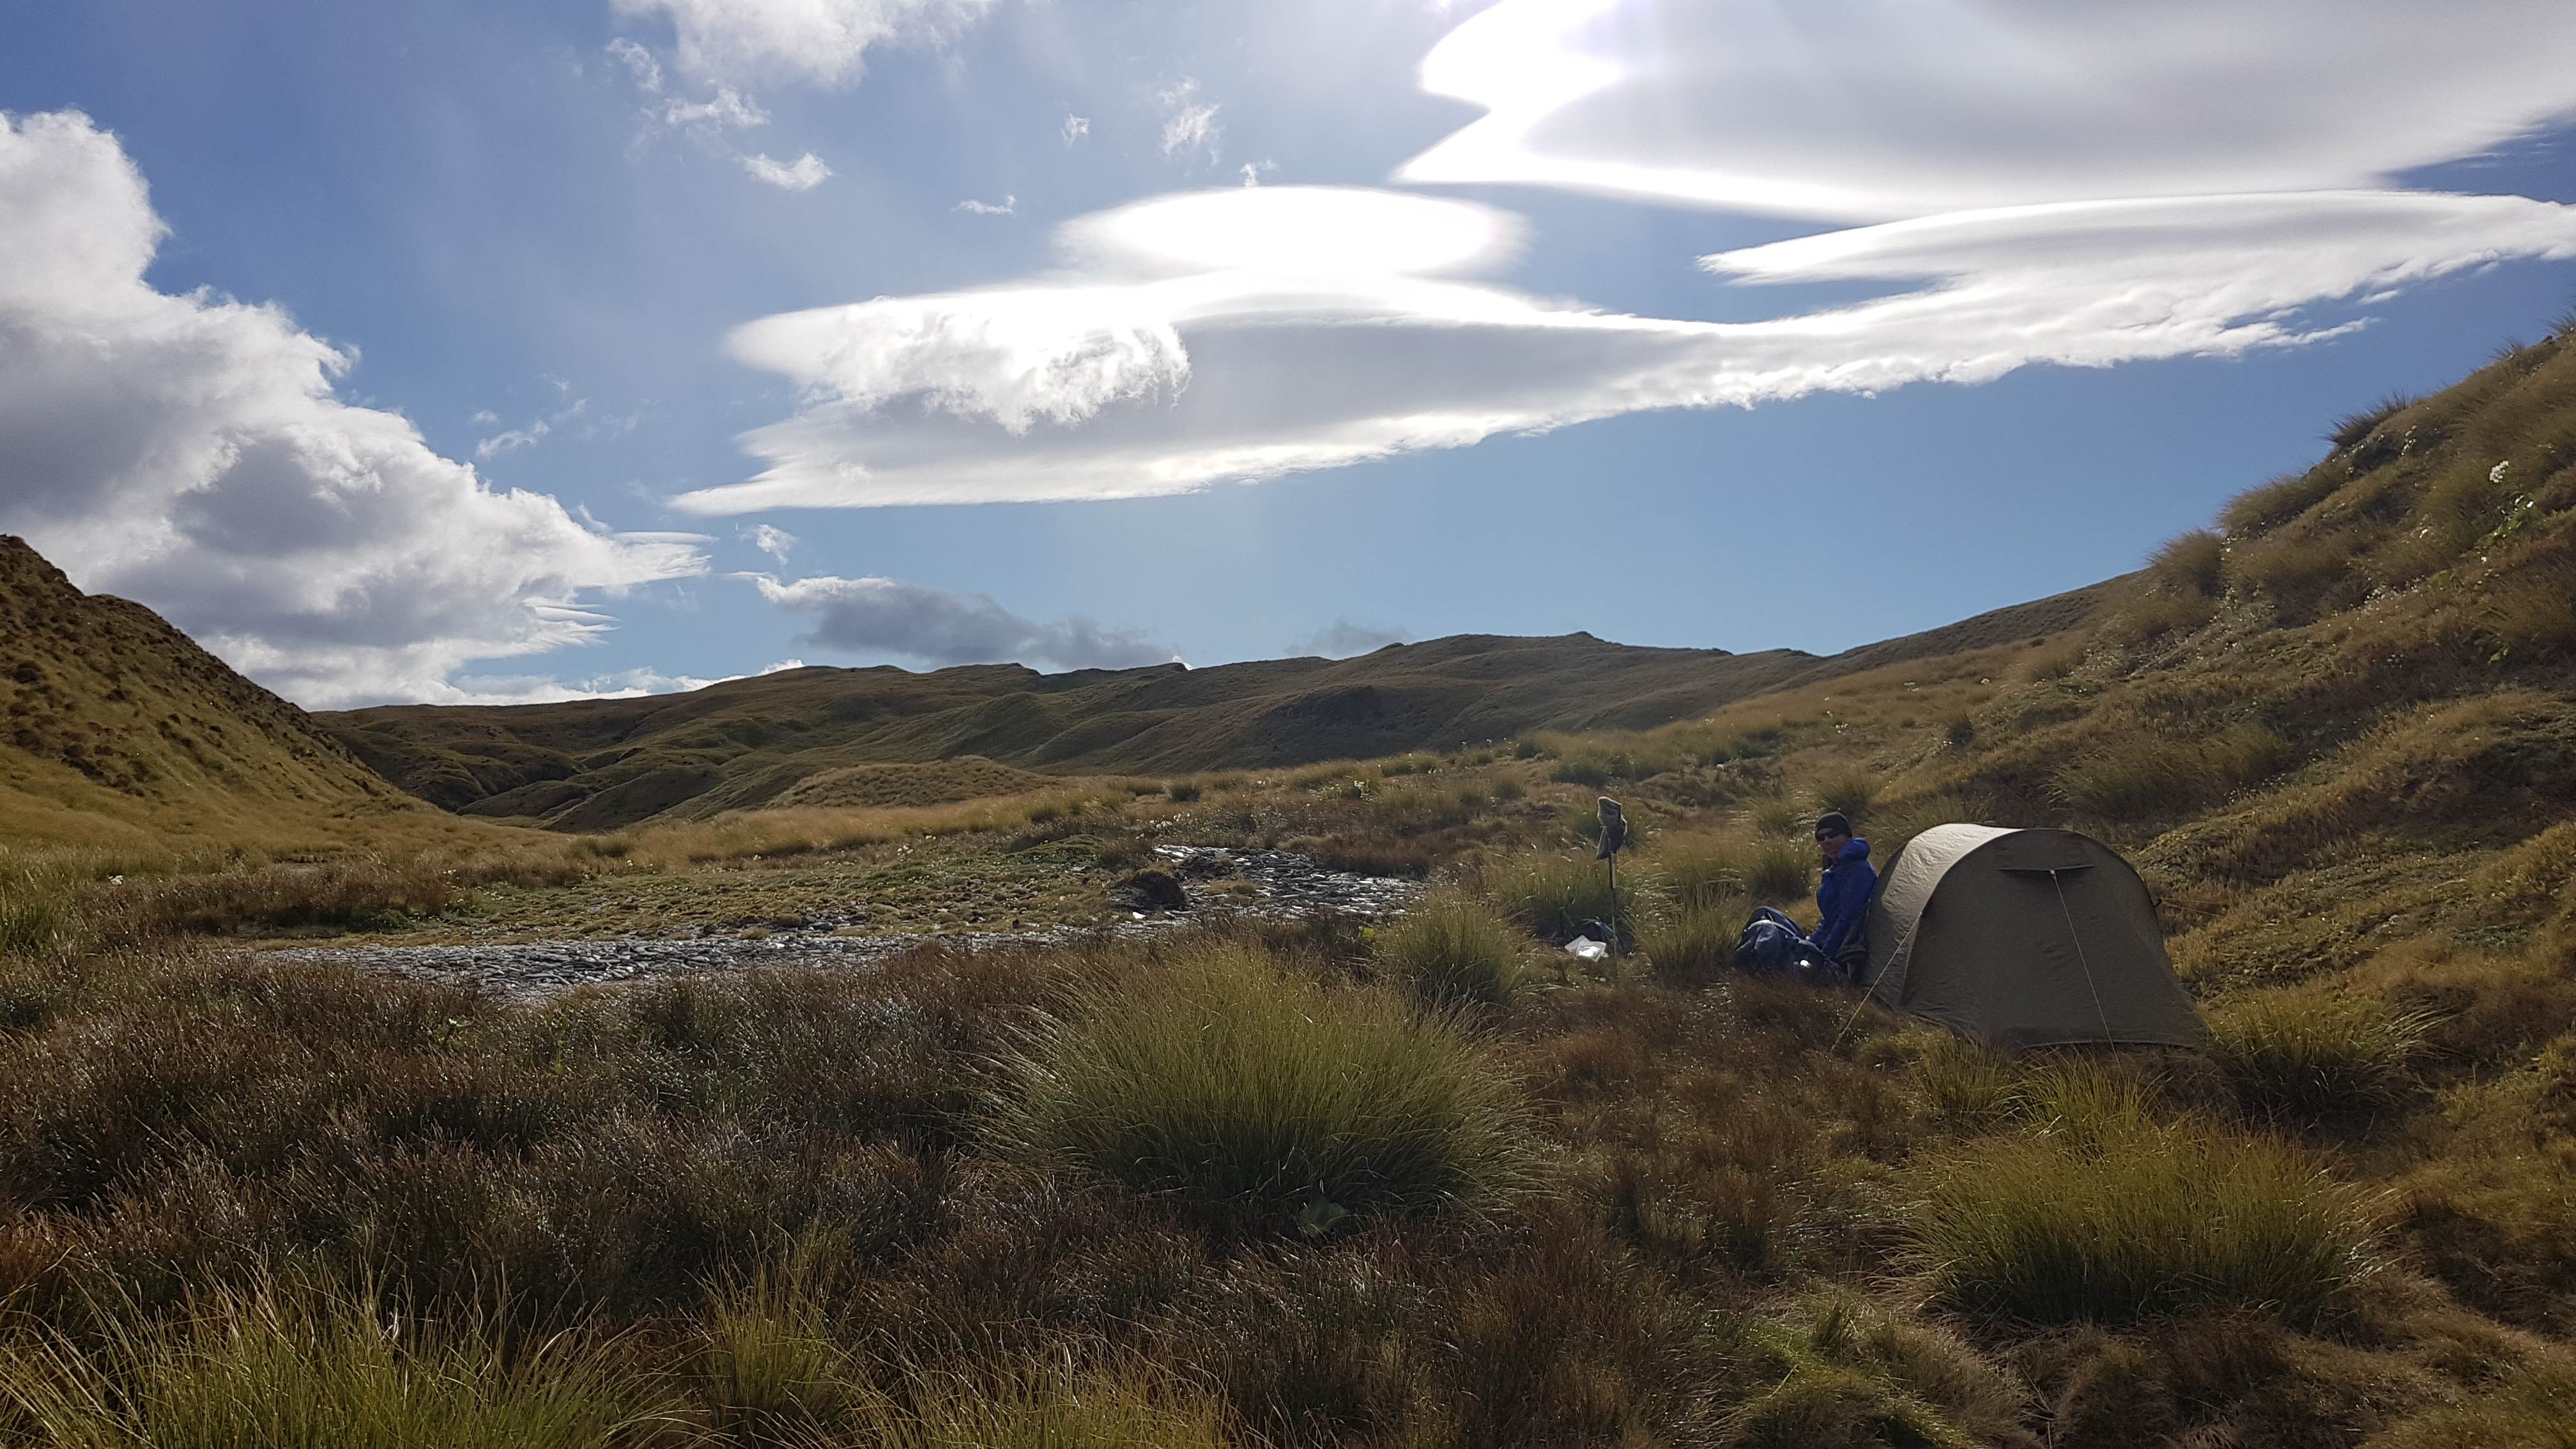 Camping by the tarns